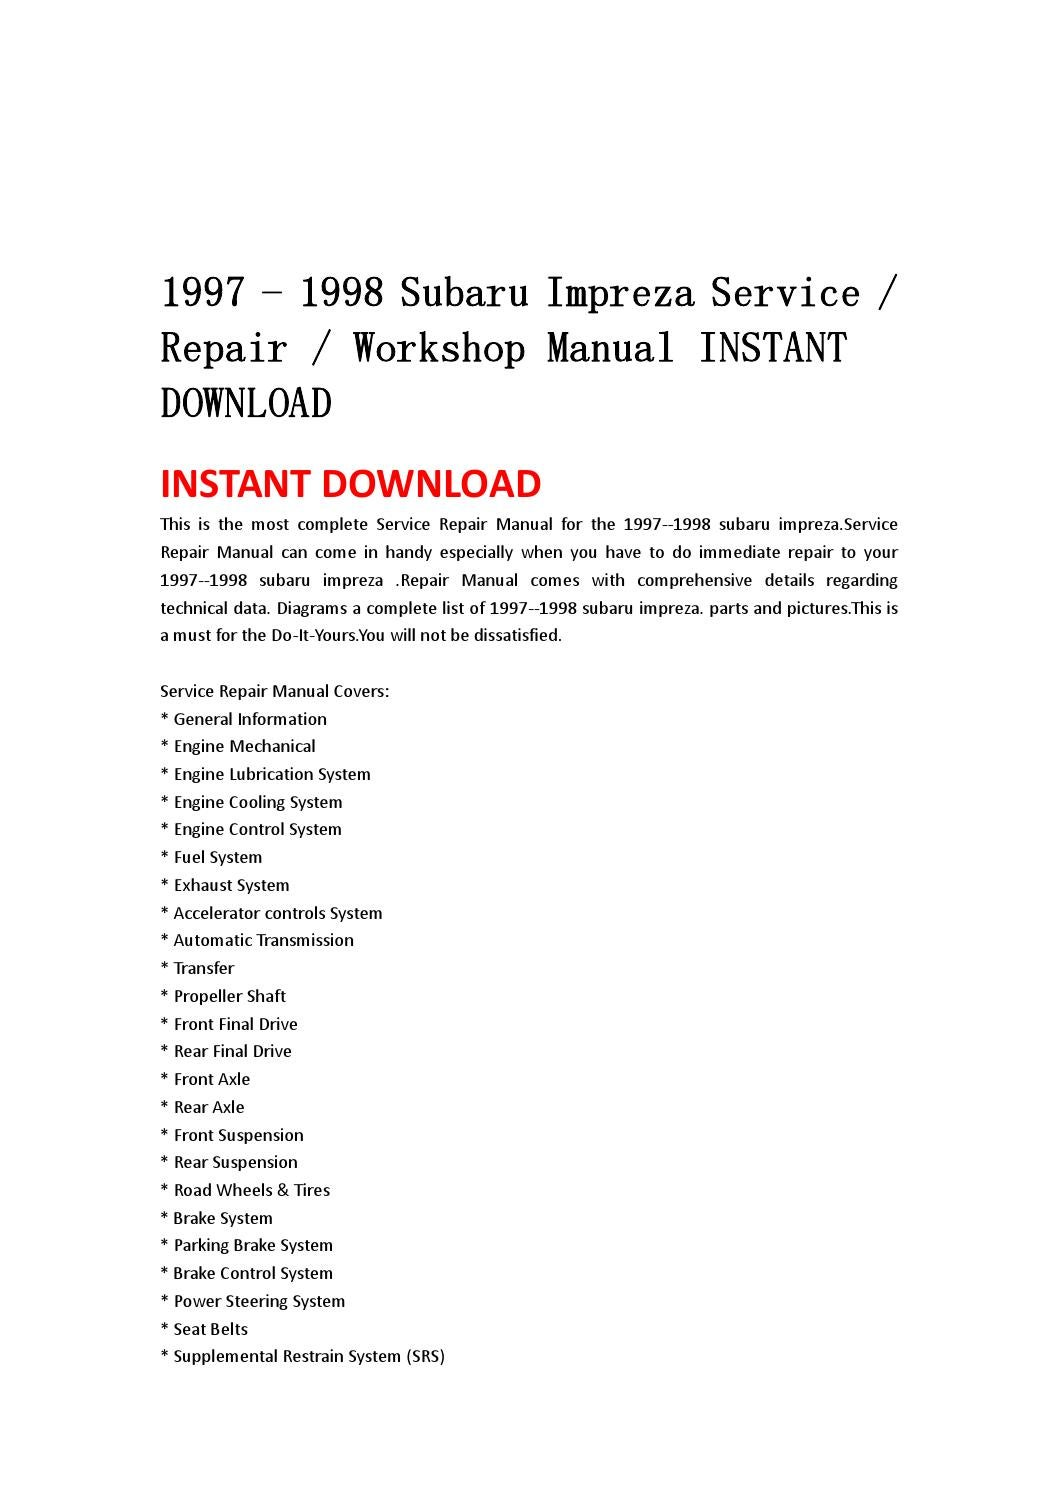 1997 1998 Subaru Impreza Service Repair Workshop Manual Instant Front Axle Diagram Download By Jsefgsebh Issuu